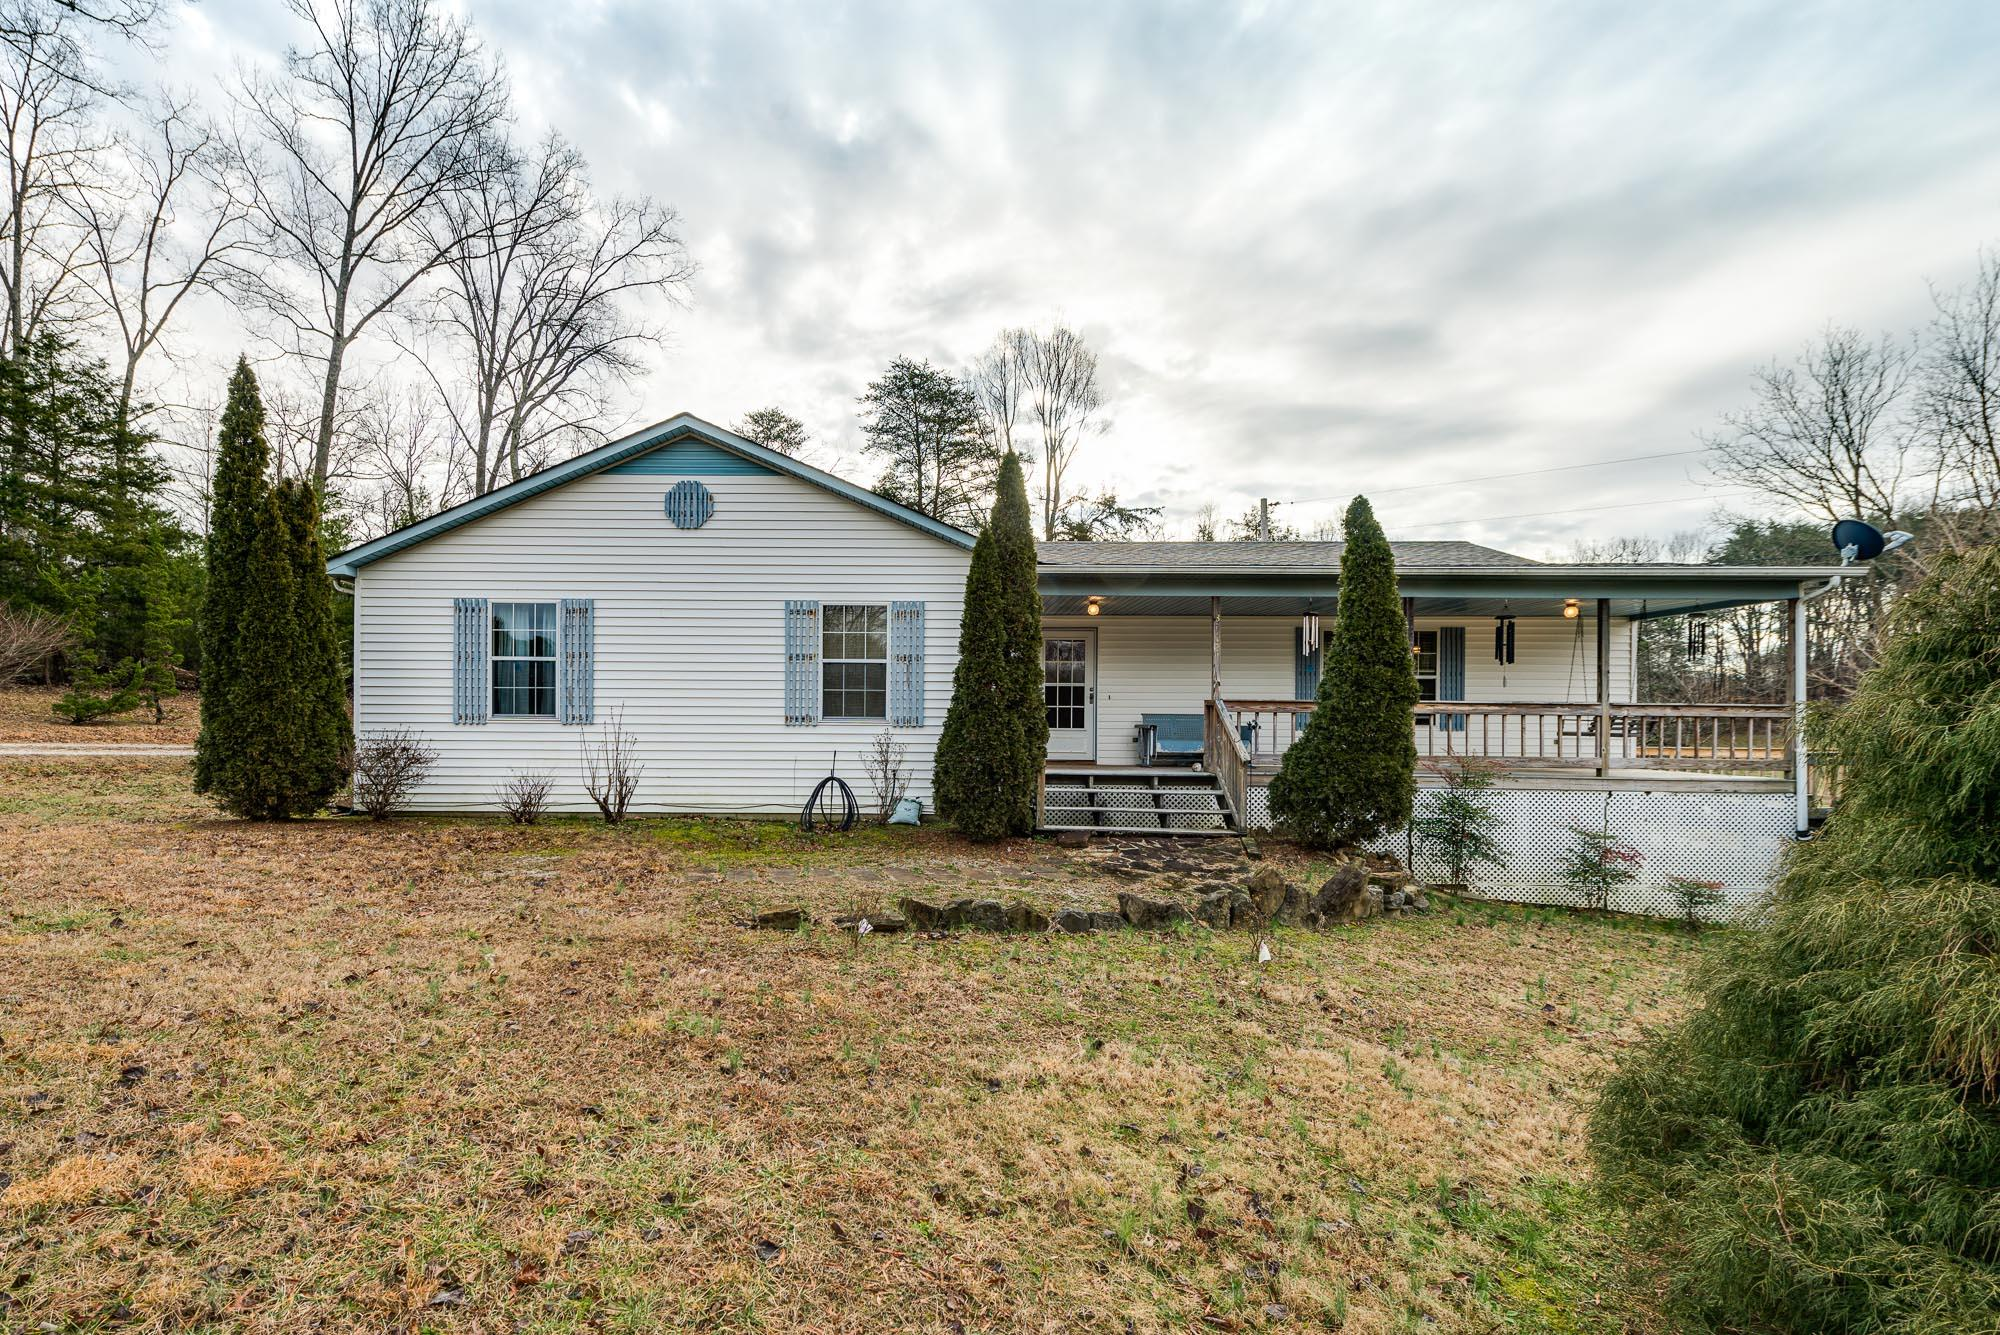 3702 Bunker Hill Rd, Cookeville, TN 38506 - Cookeville, TN real estate listing